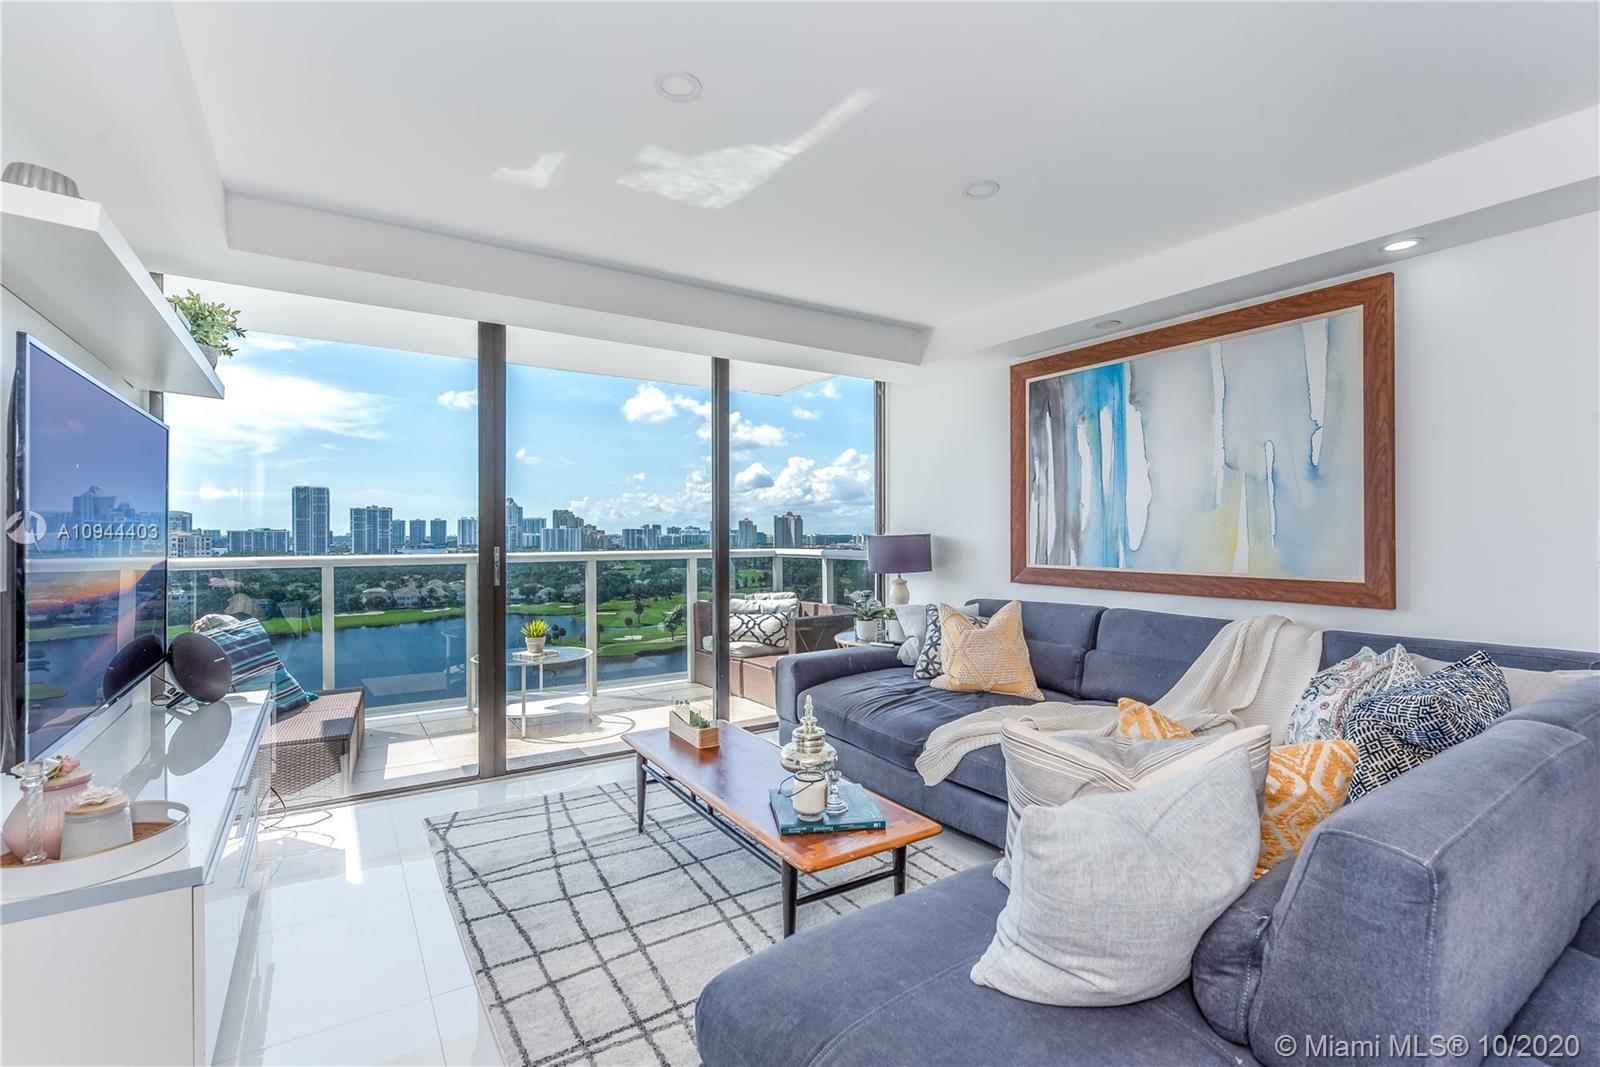 Beautiful updated 2/2 unit with the most incredible direct Turnberry golf course views, lots of natu